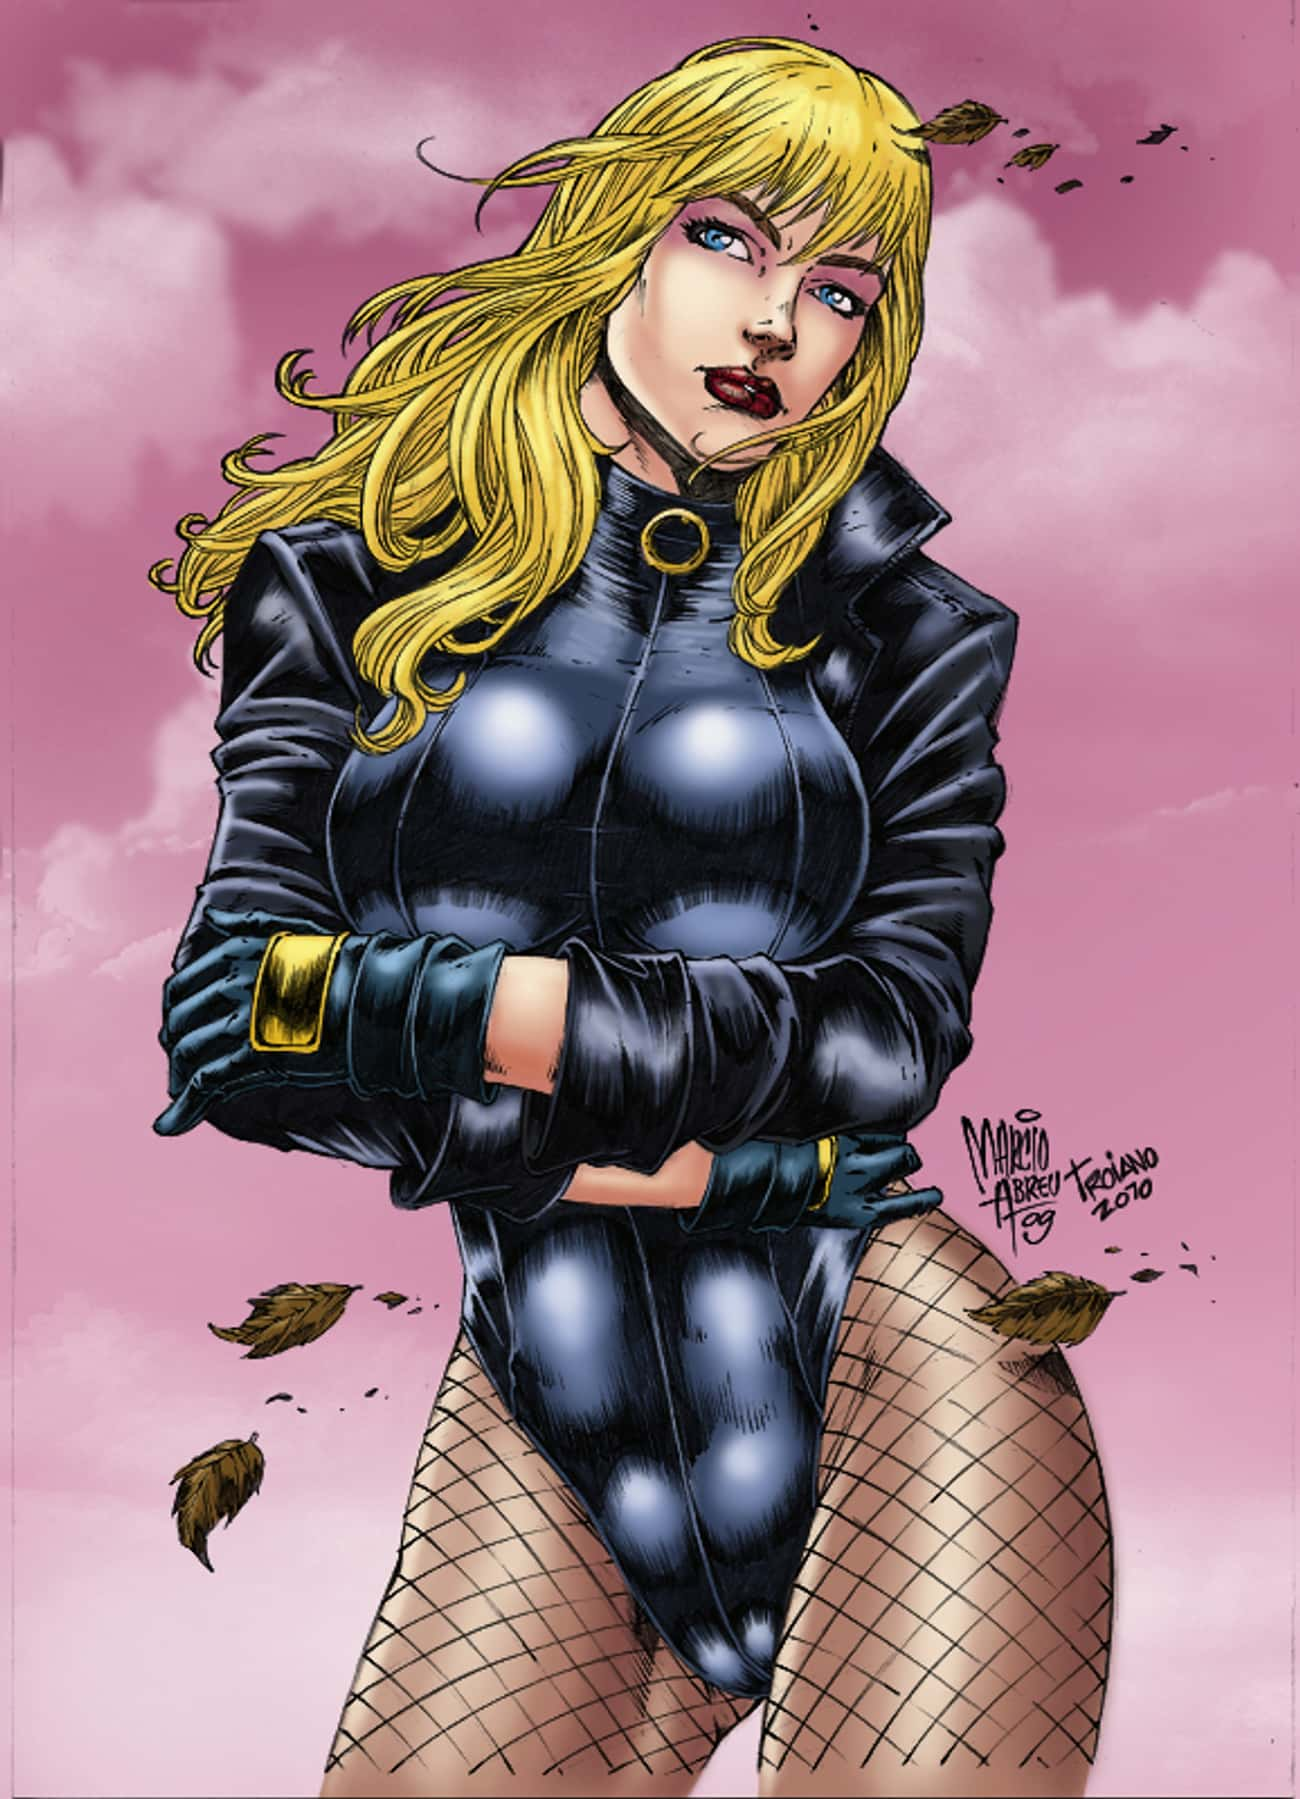 Black Canary in Shiny High Cut is listed (or ranked) 3 on the list The Most Attractive Black Canary Pictures